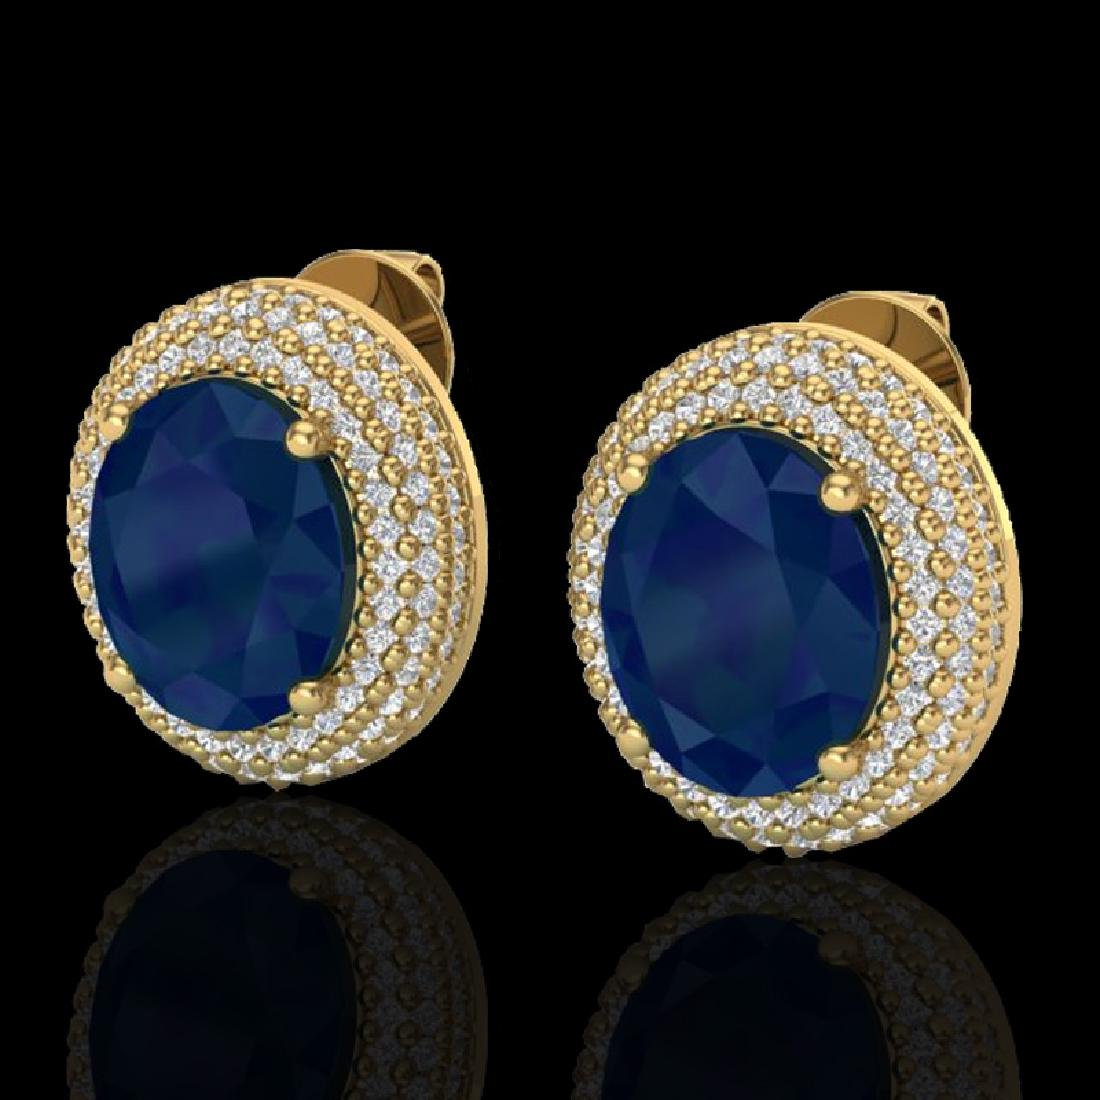 9.20 CTW Sapphire & Micro Pave VS/SI Diamond Earrings